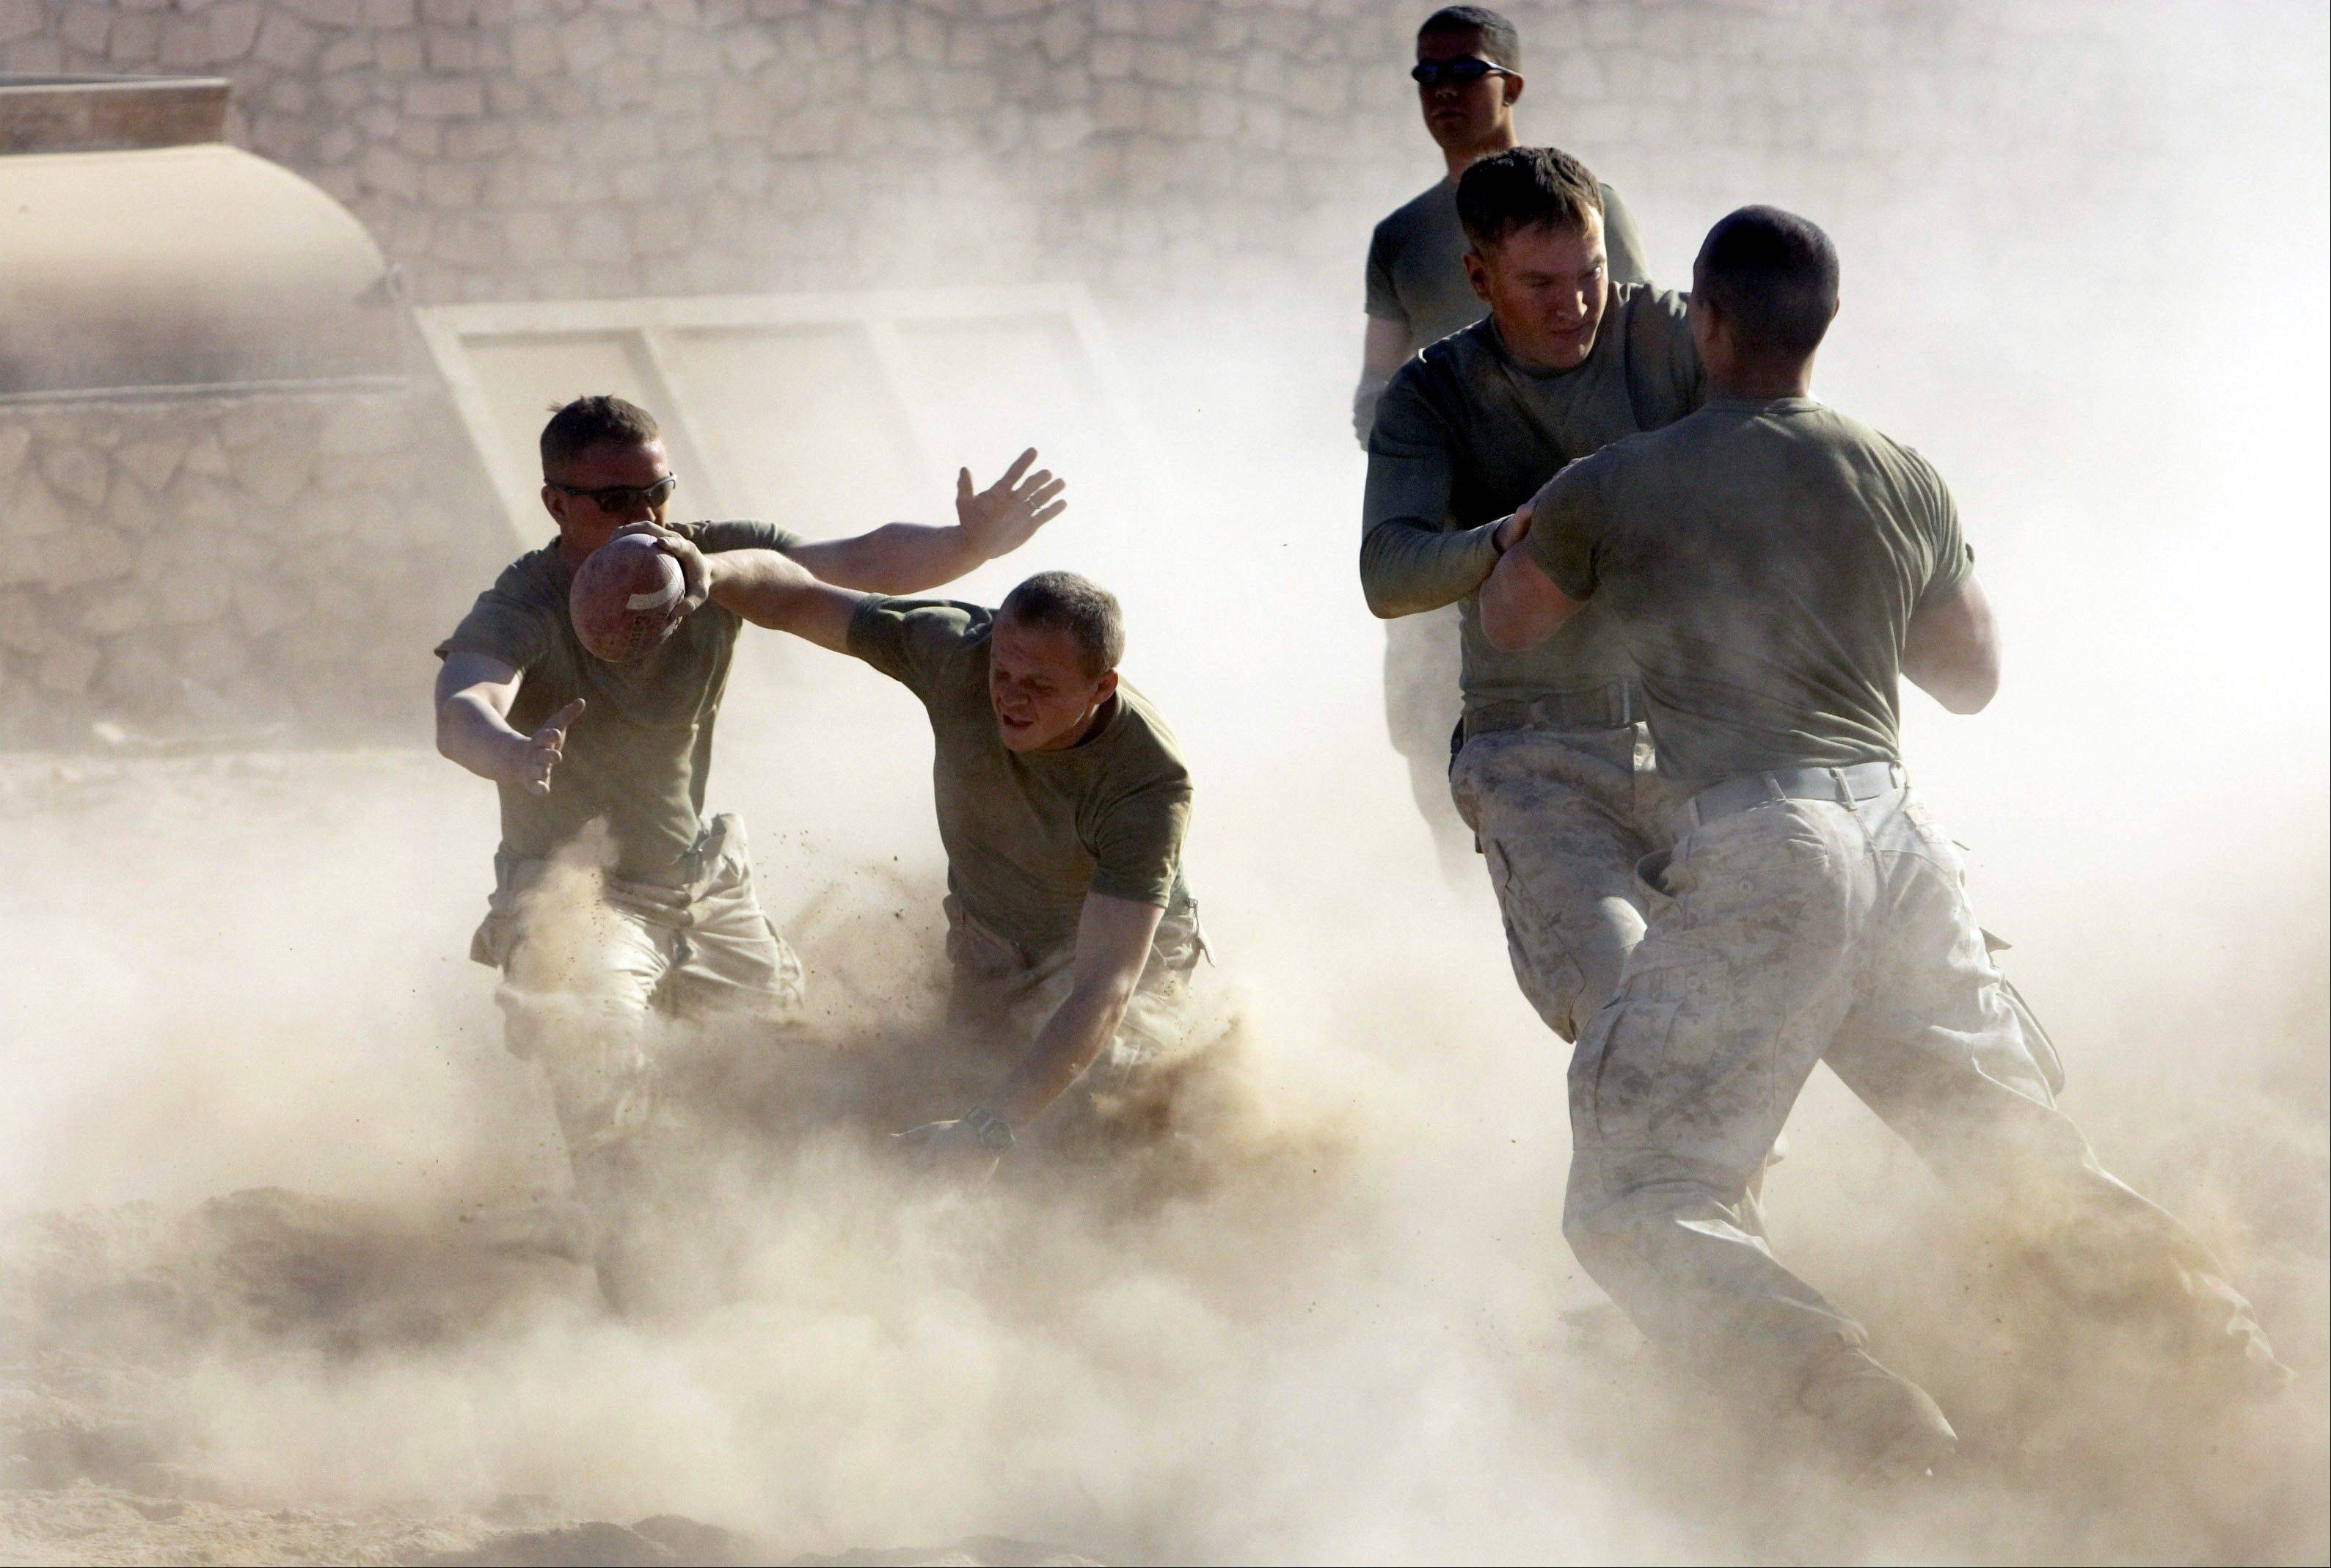 FILE - U.S. Marines play football in Karabilah, Iraq, near the Syrian border, on Thursday, Nov. 24, 2005 during Thanksgiving celebrations.